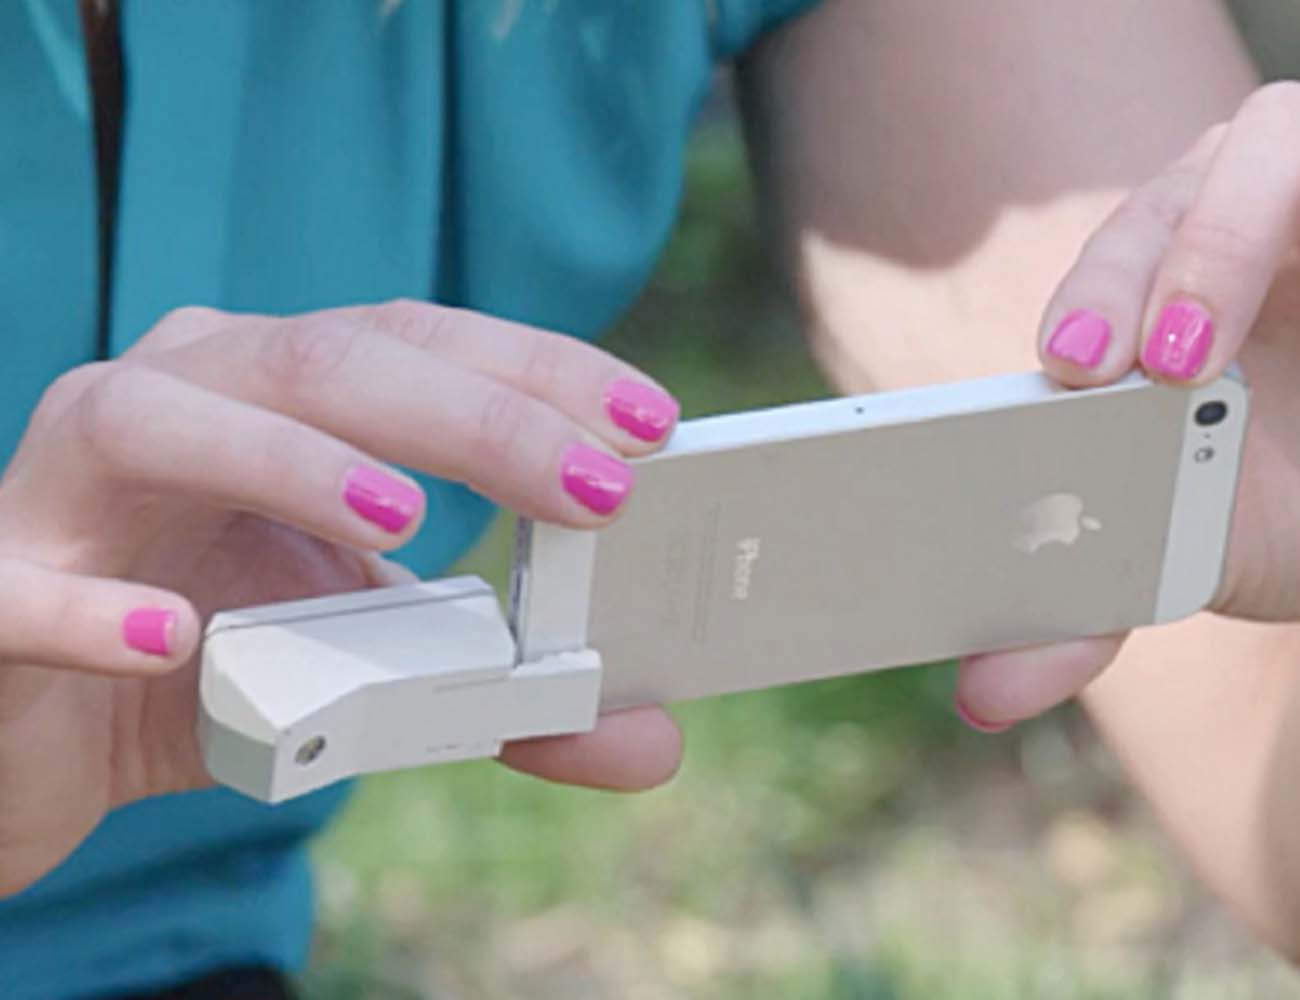 Bevel turns your smartphone into a 3D Camera